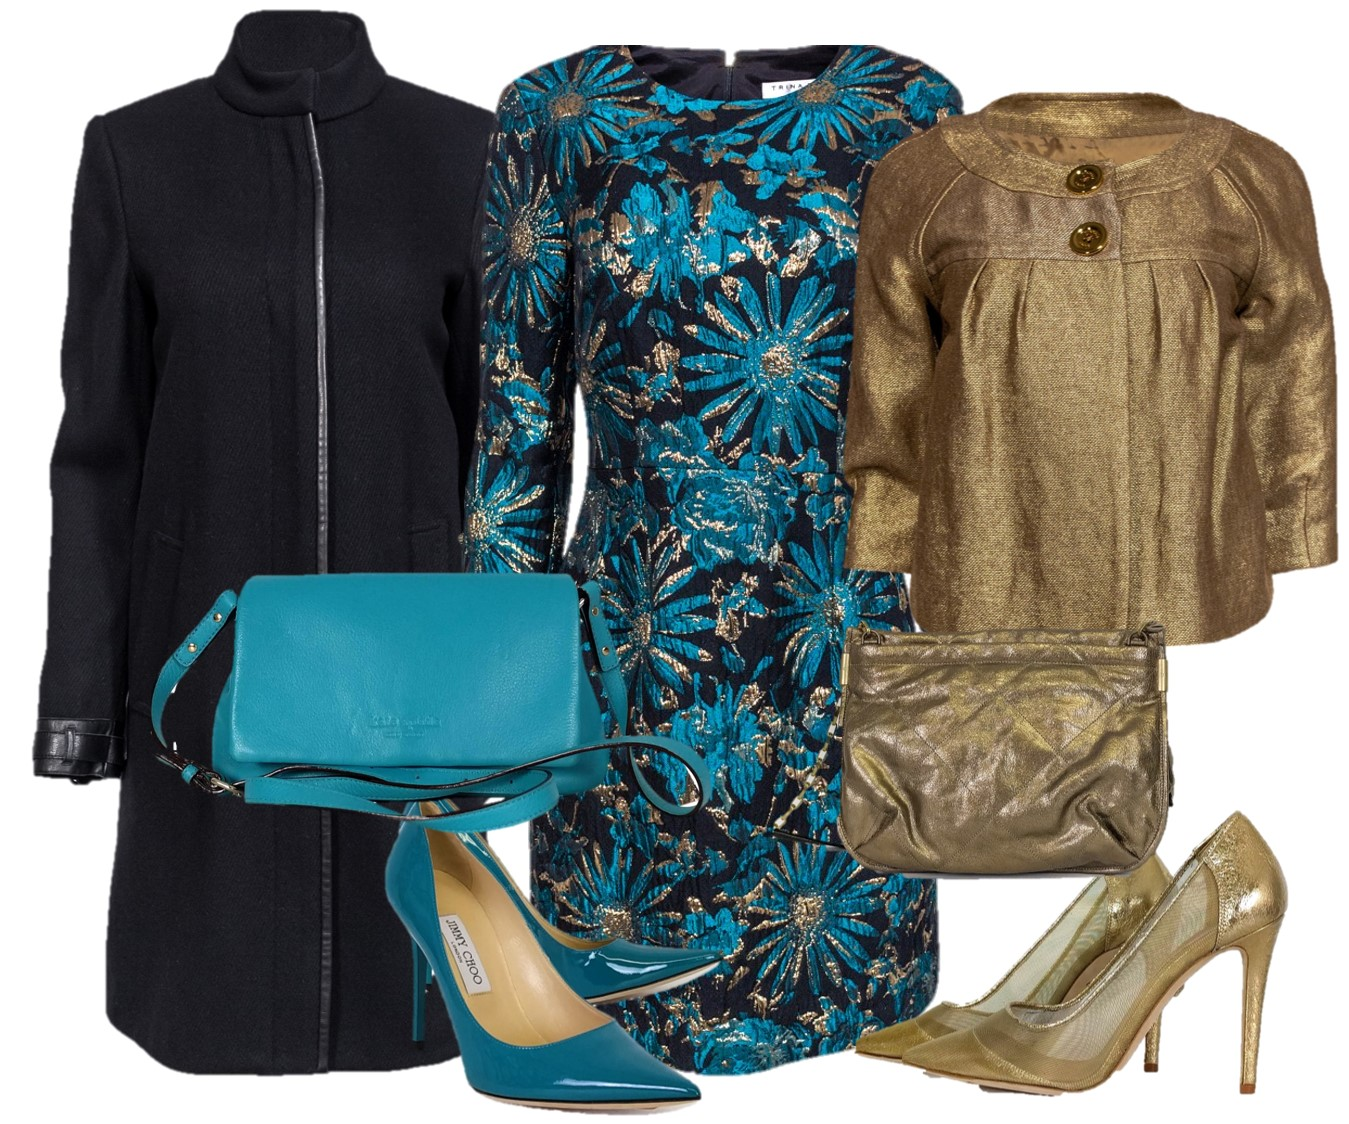 One dress – two outfits for the evening